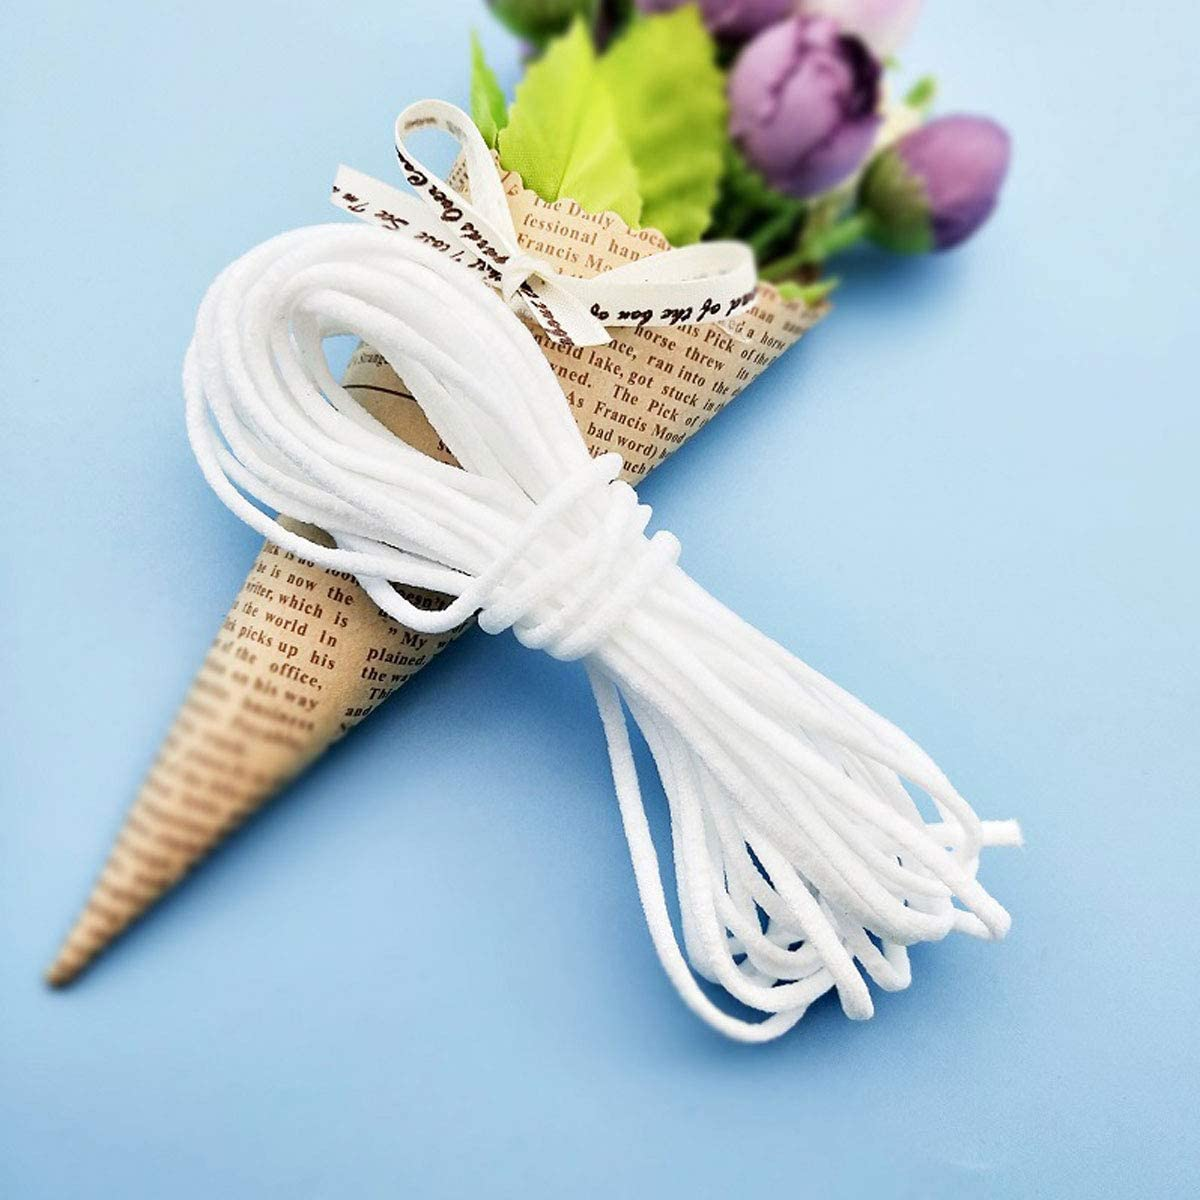 110 Yard Elastic Cord Earloop Sewing Strap String Cord for Sewing 1//8 inch White Elastic Rope Stretch Flat String Ear Tie Rope for Crafting,Hanging